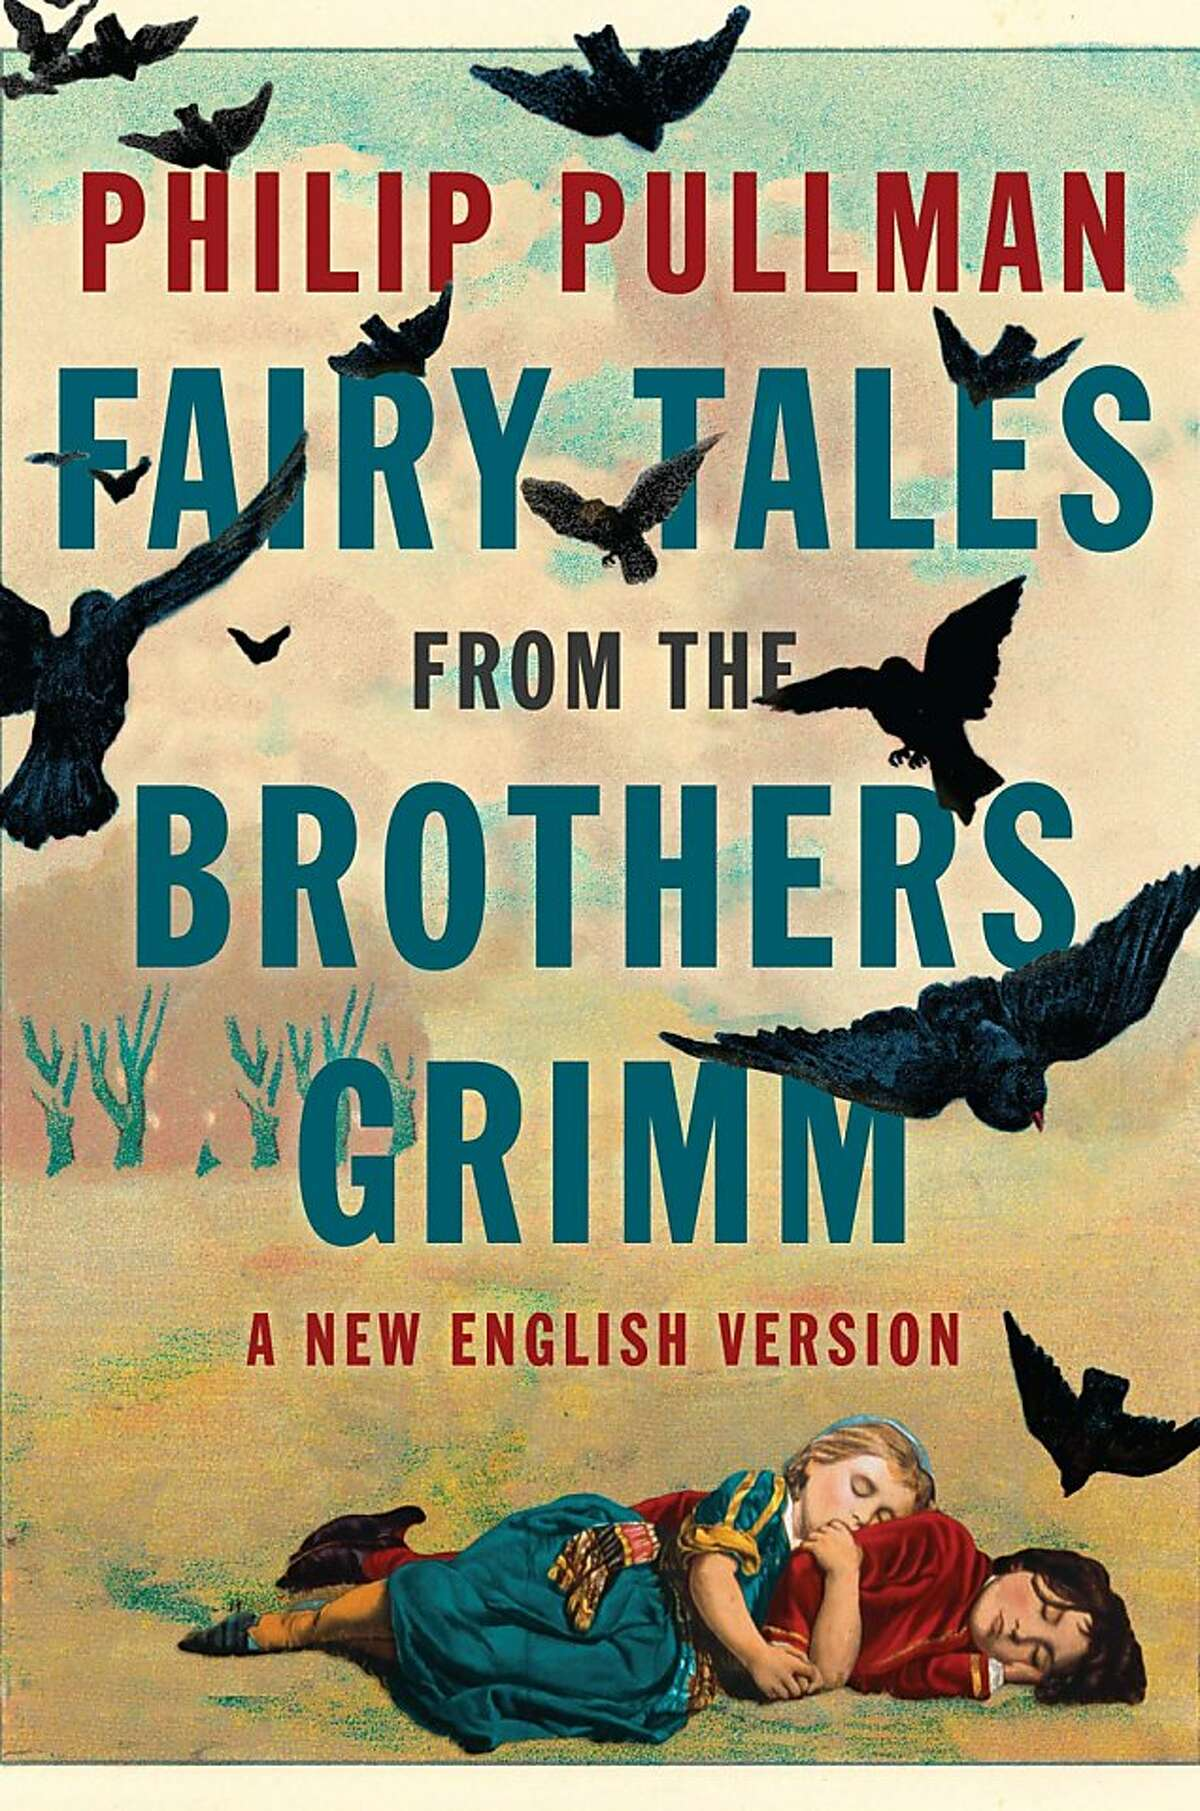 Fairy Tales From the Brothers Grimm, by Philip Pullman